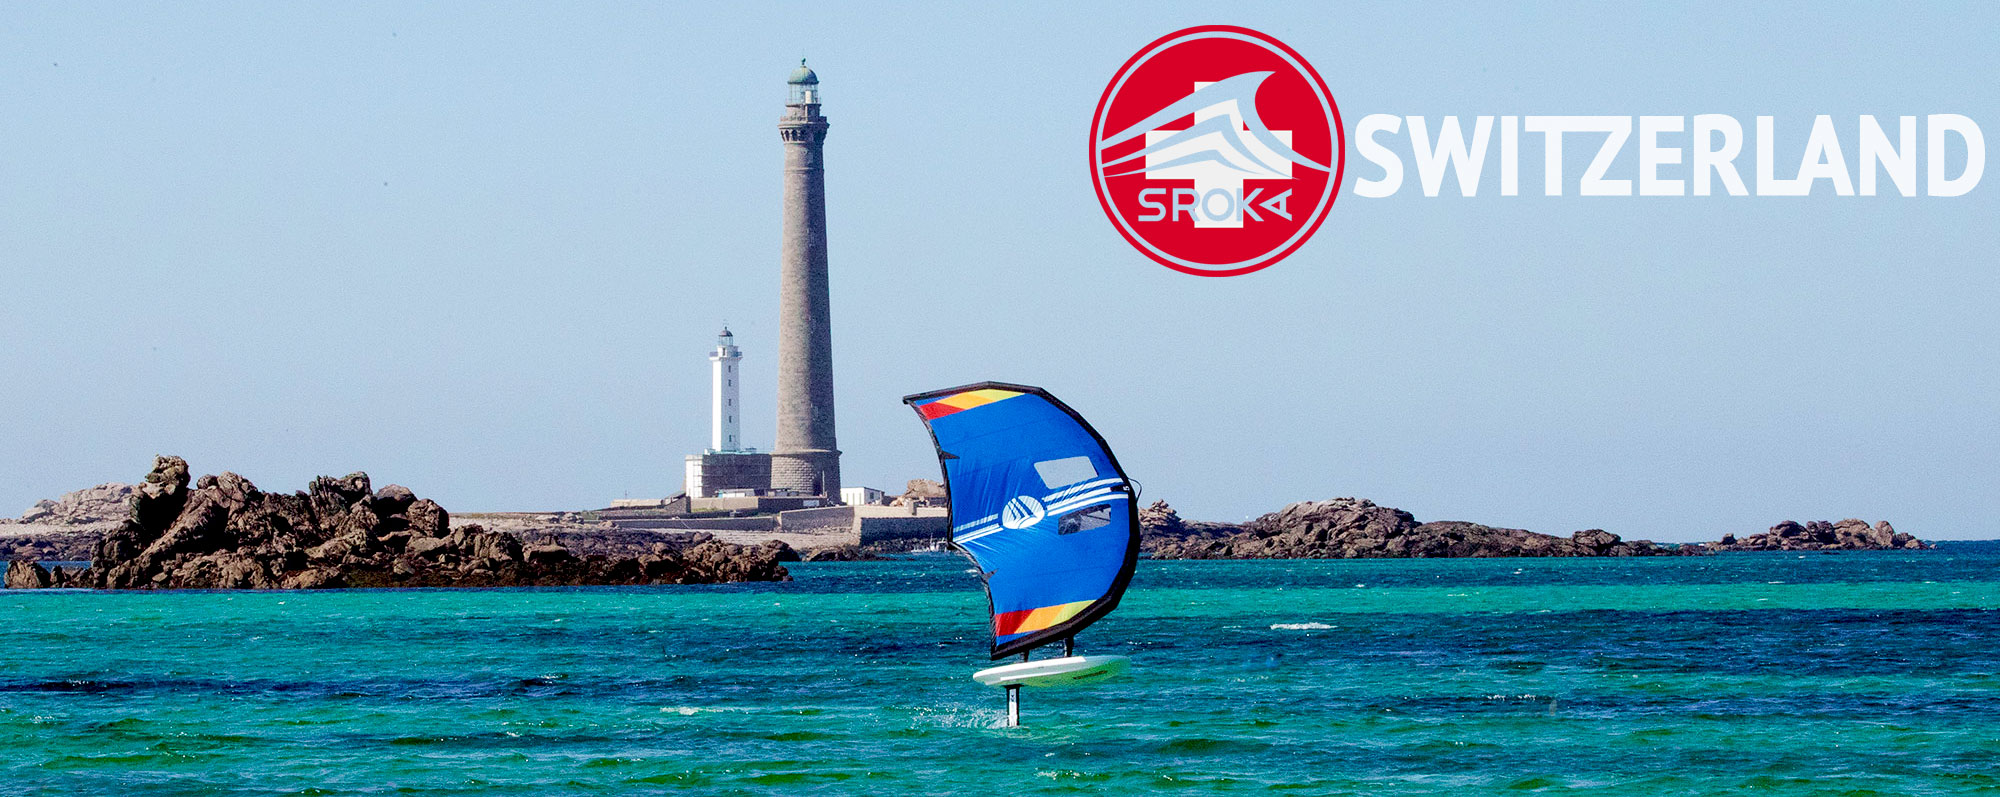 Buy a wing foil, a surf foil, a SUP Foil, a Kite Foil, a Wind foil or a stand-up paddle in Switzerland.